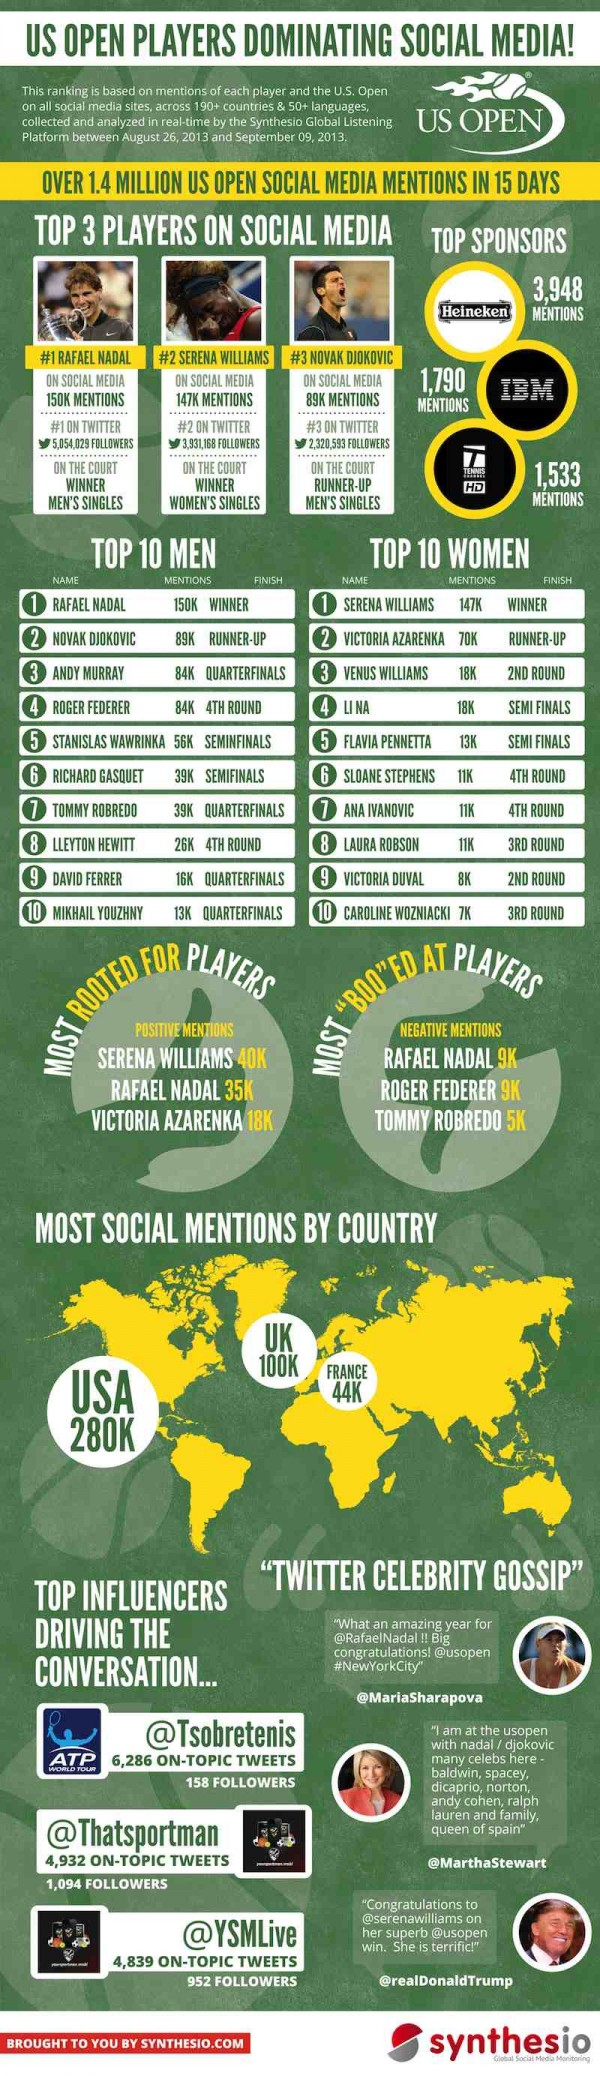 US-OPEN-INFOGRAPHIC-alltwitter